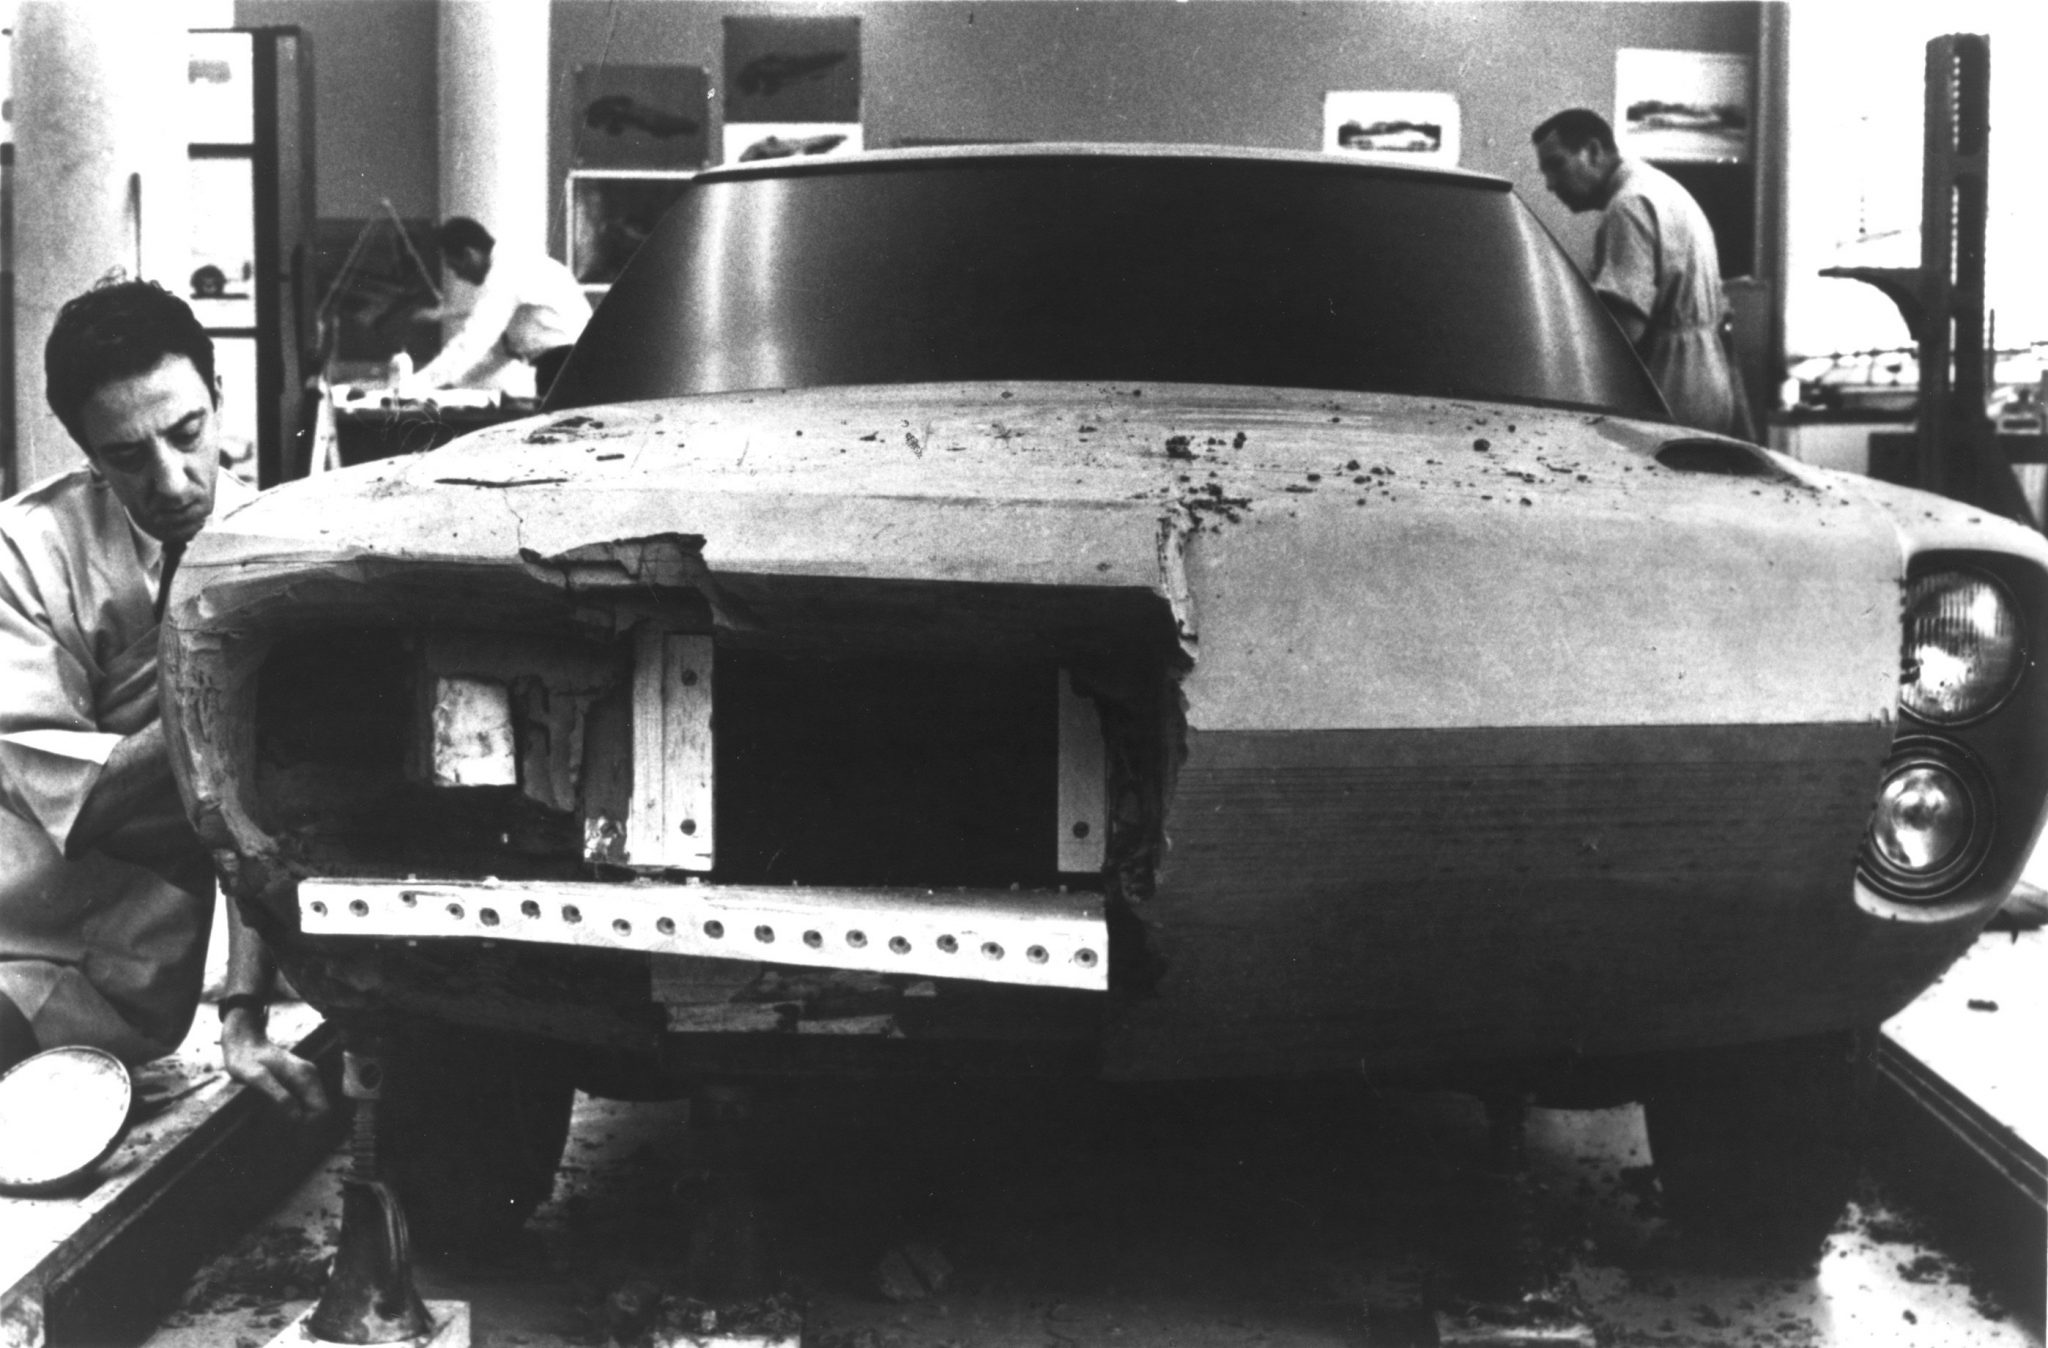 original AMX concept clay model